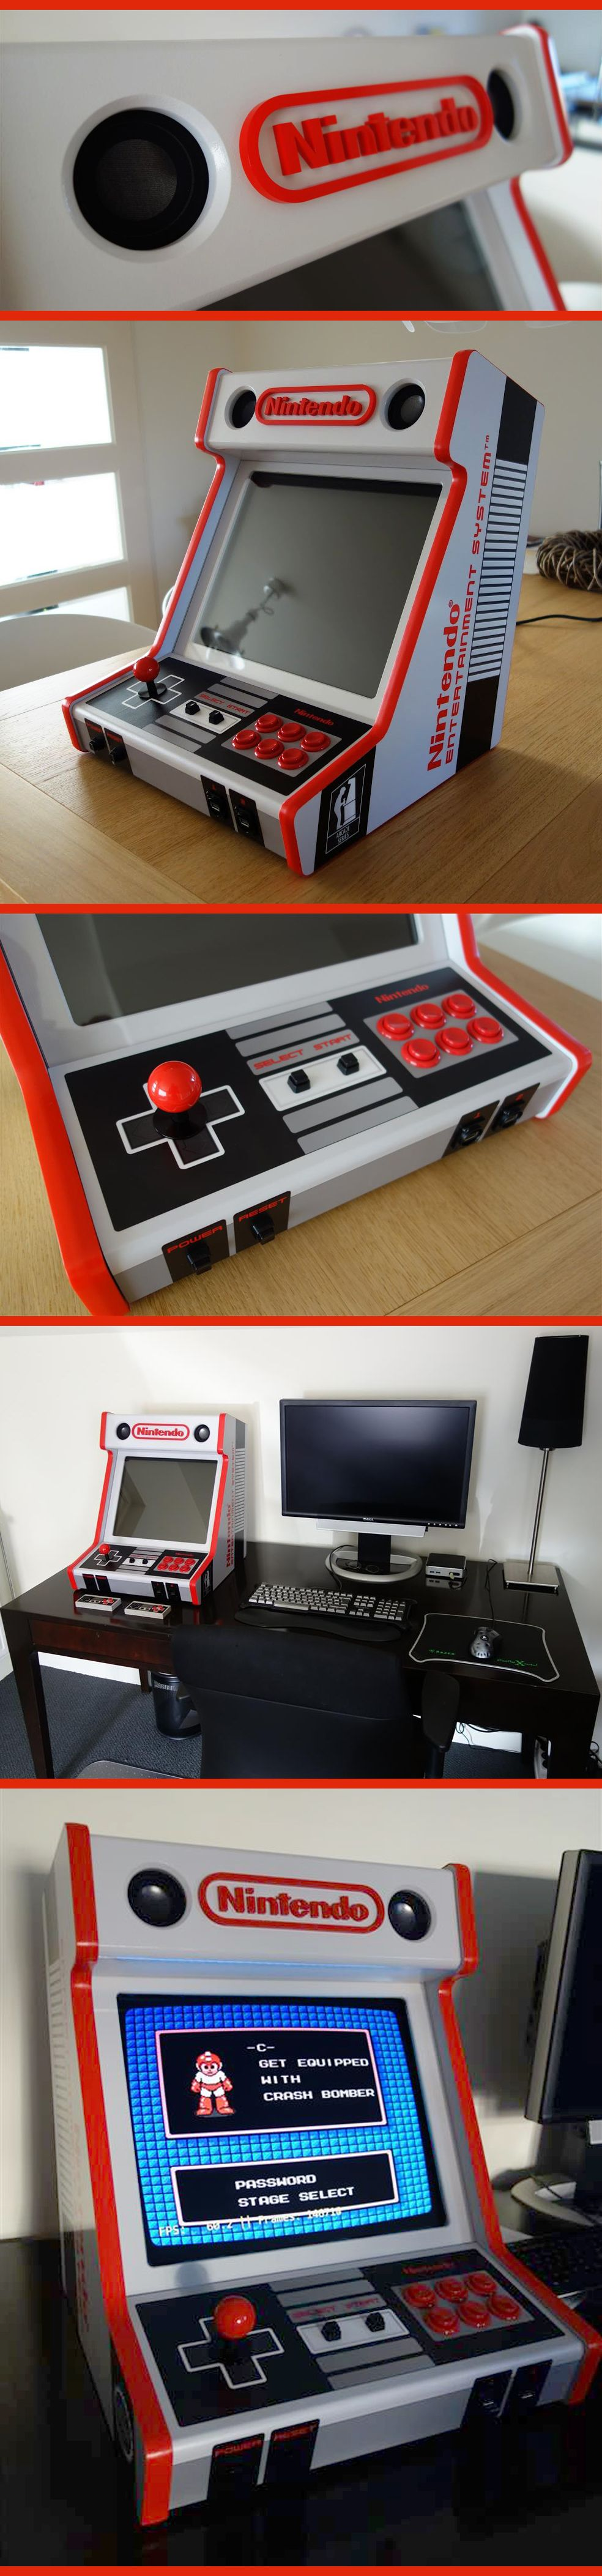 custom made nes bartop arcade cabinet super nostalgic retro nintendo style via arcadecontrols. Black Bedroom Furniture Sets. Home Design Ideas